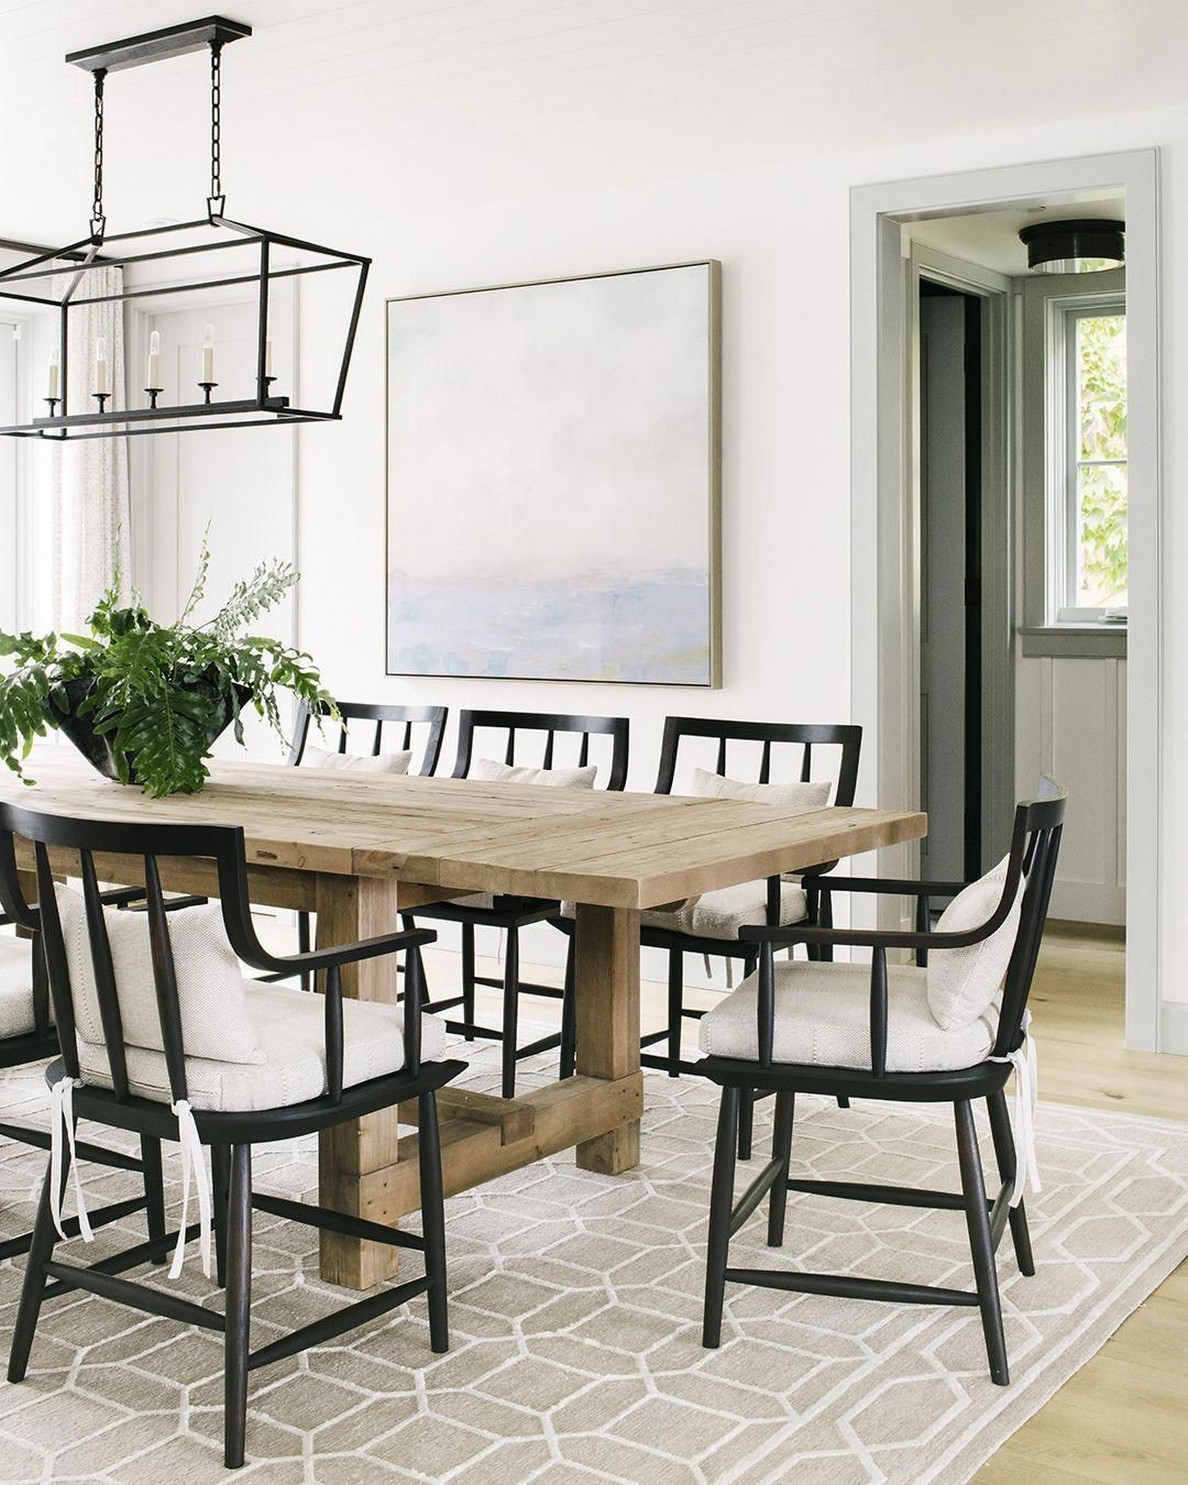 86 Different Types Of Dining Chairs Home Decor 19